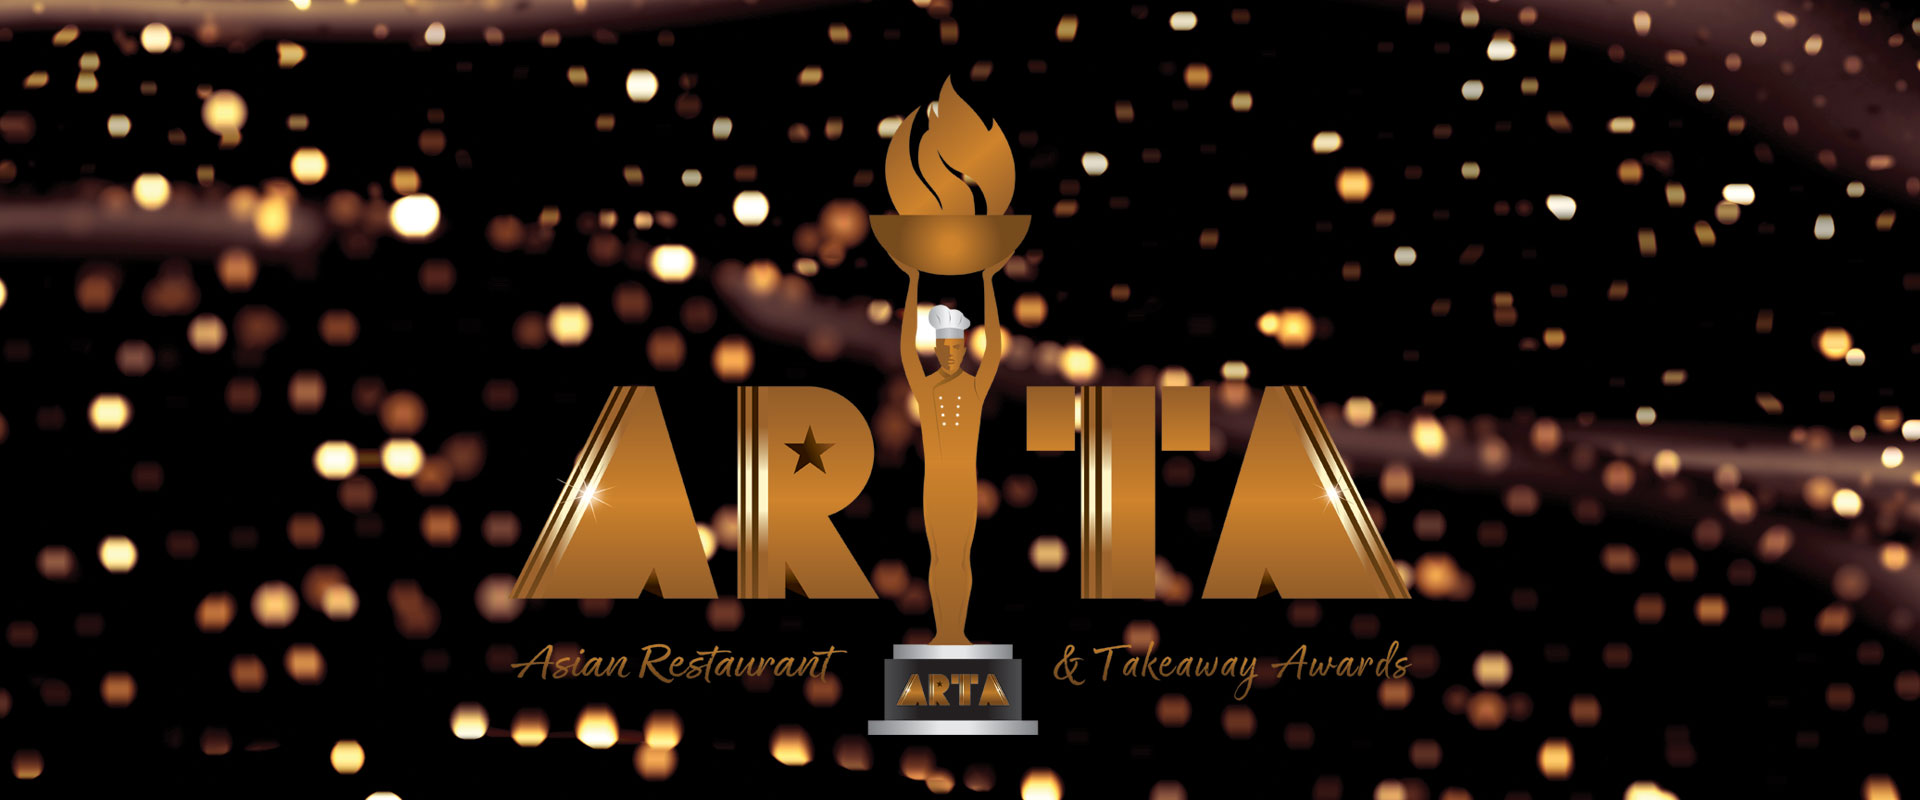 Asian Restaurant & Takeaway Awards (ARTA), London, United Kingdom